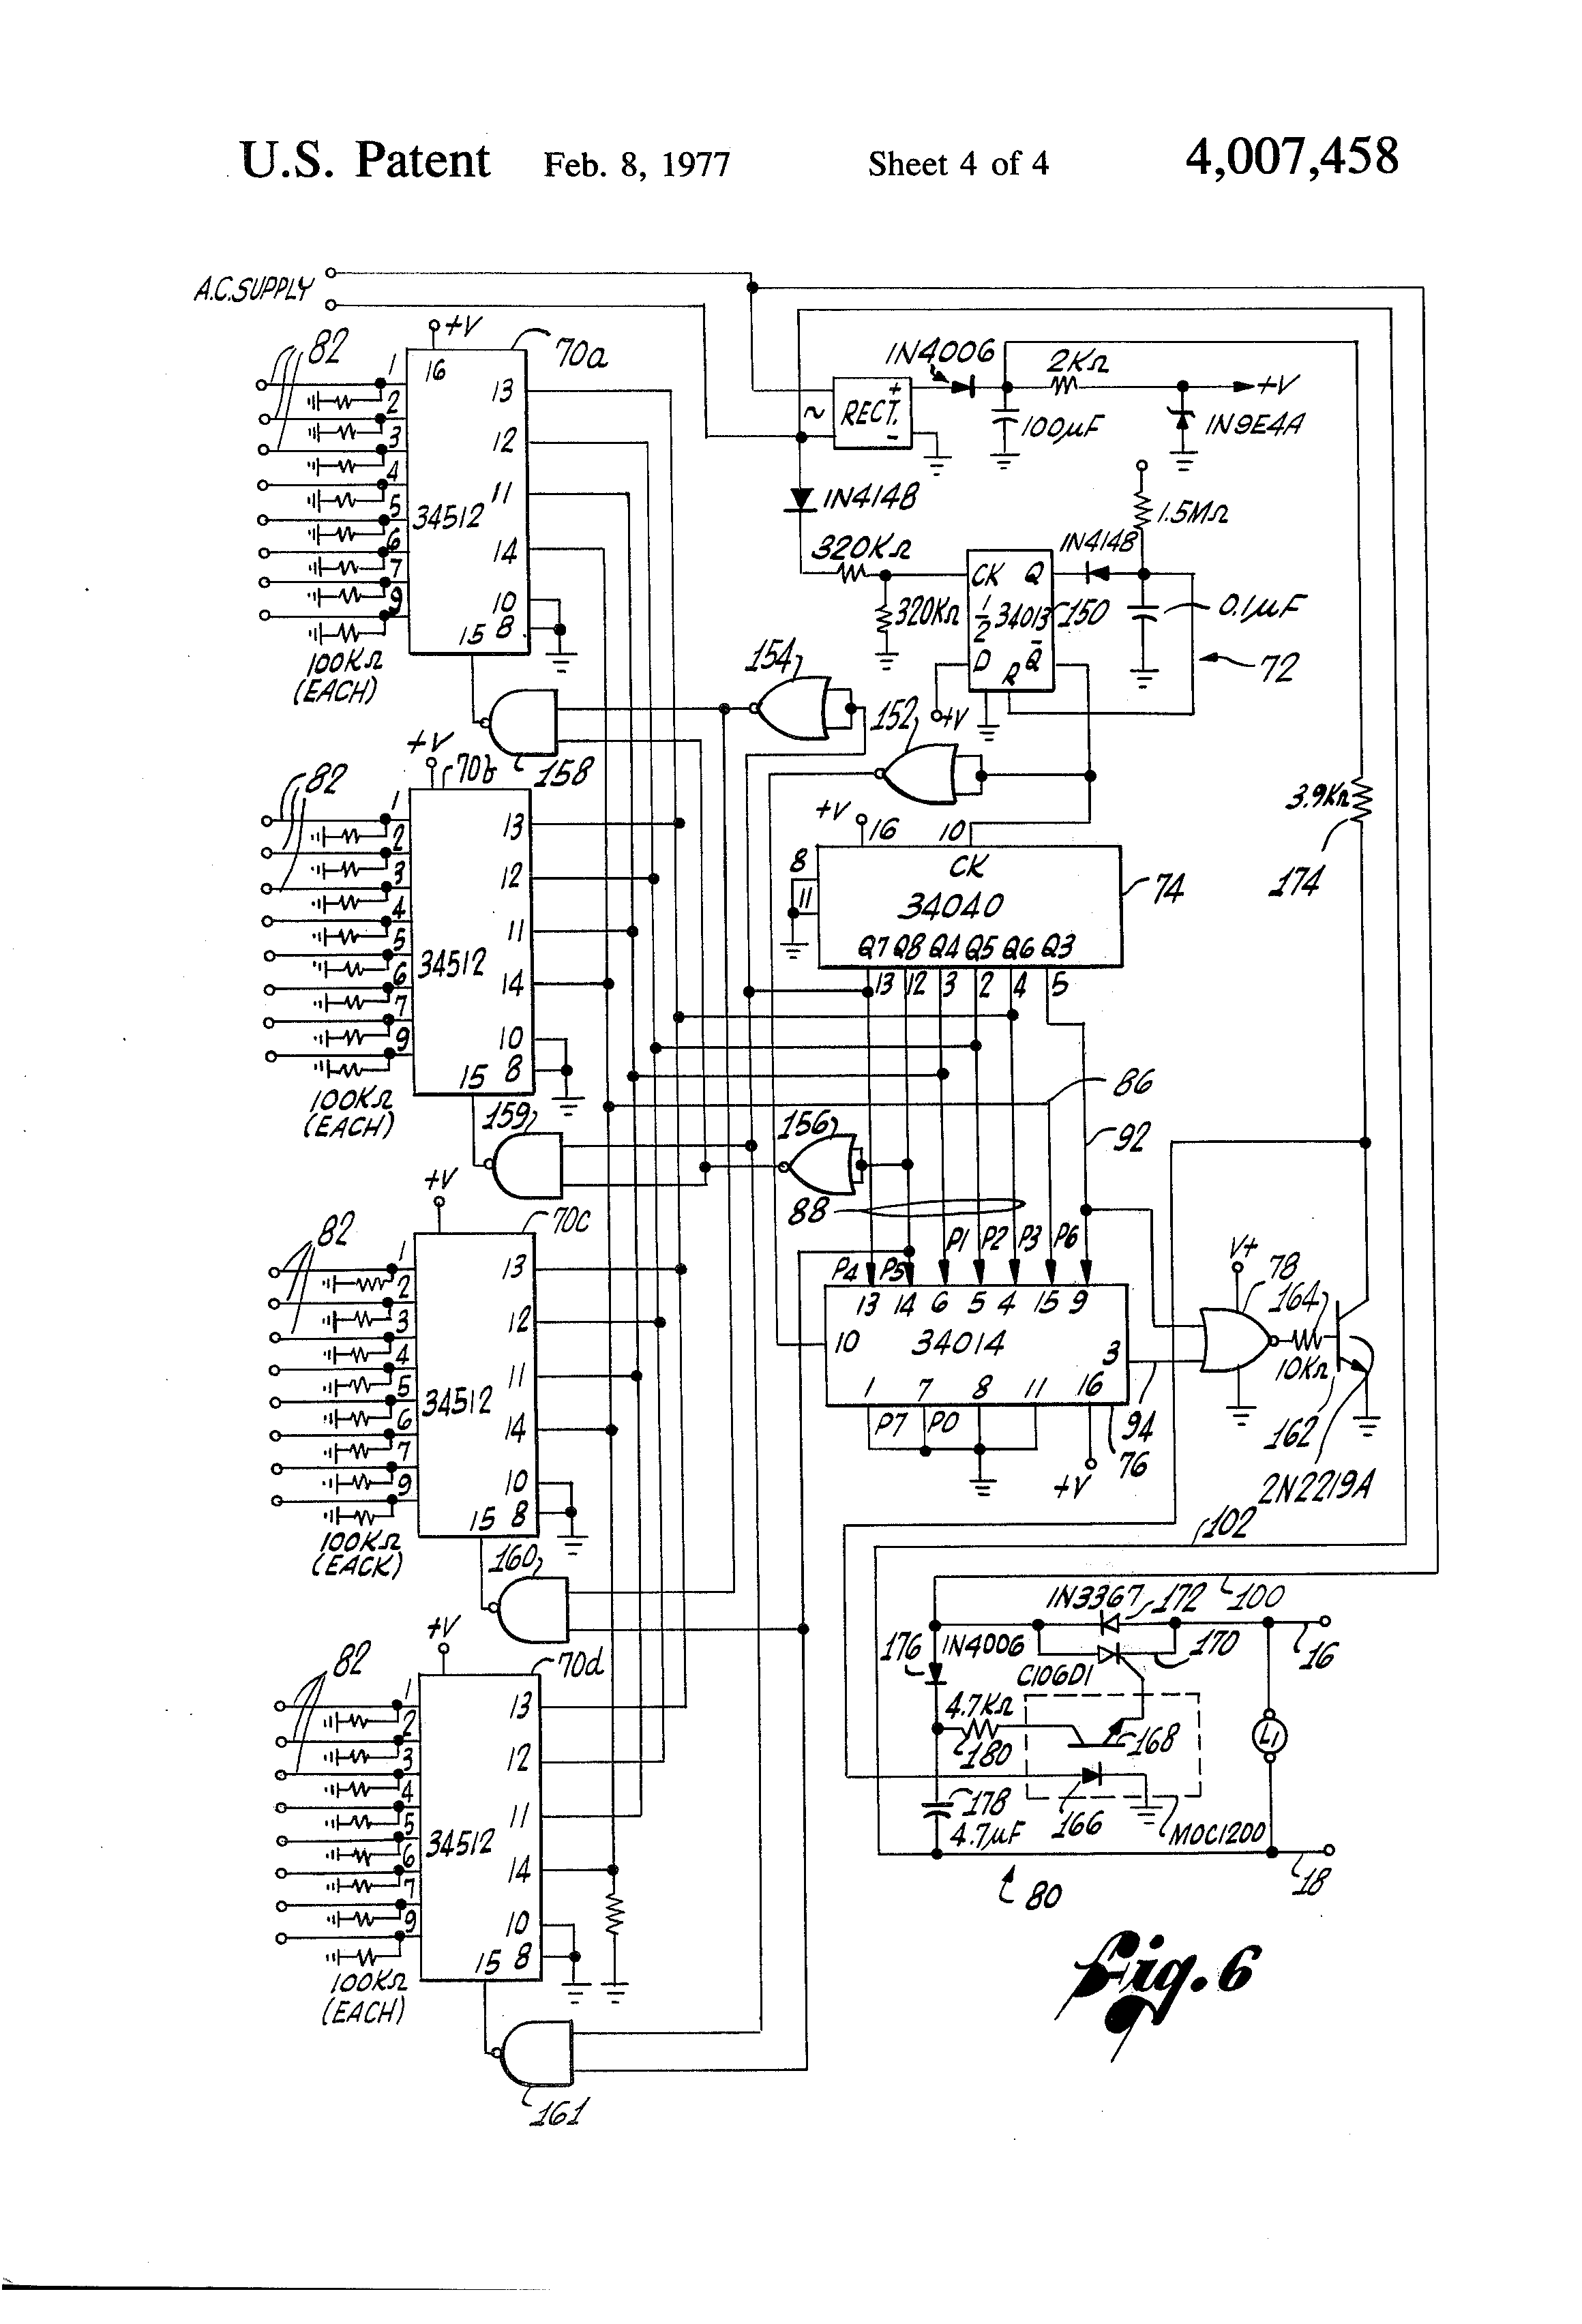 US4007458 4 toro irrigation wiring diagram wiring diagram and schematic design Rain Bird Drip Irrigation at soozxer.org